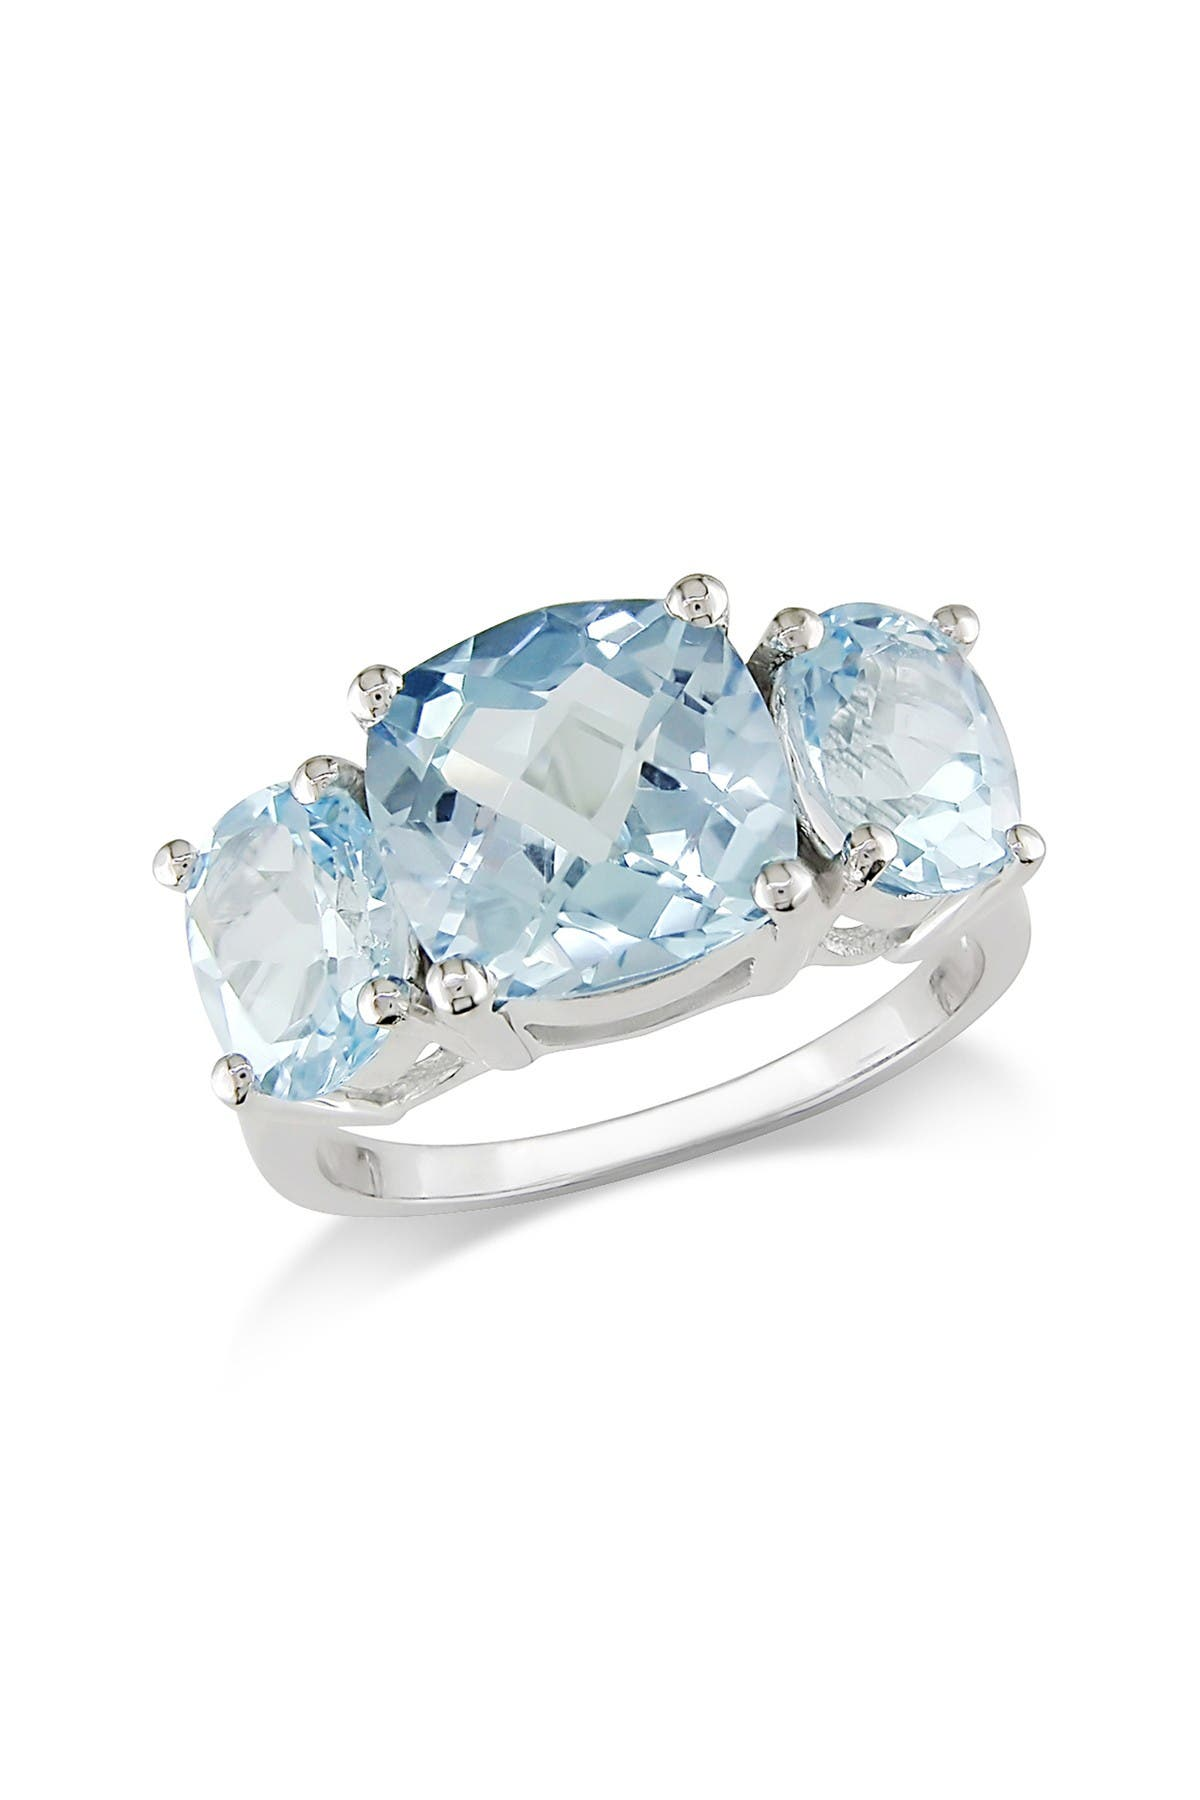 Image of Delmar Sterling Silver Cushion Sky Blue Topaz 3-Stone Ring